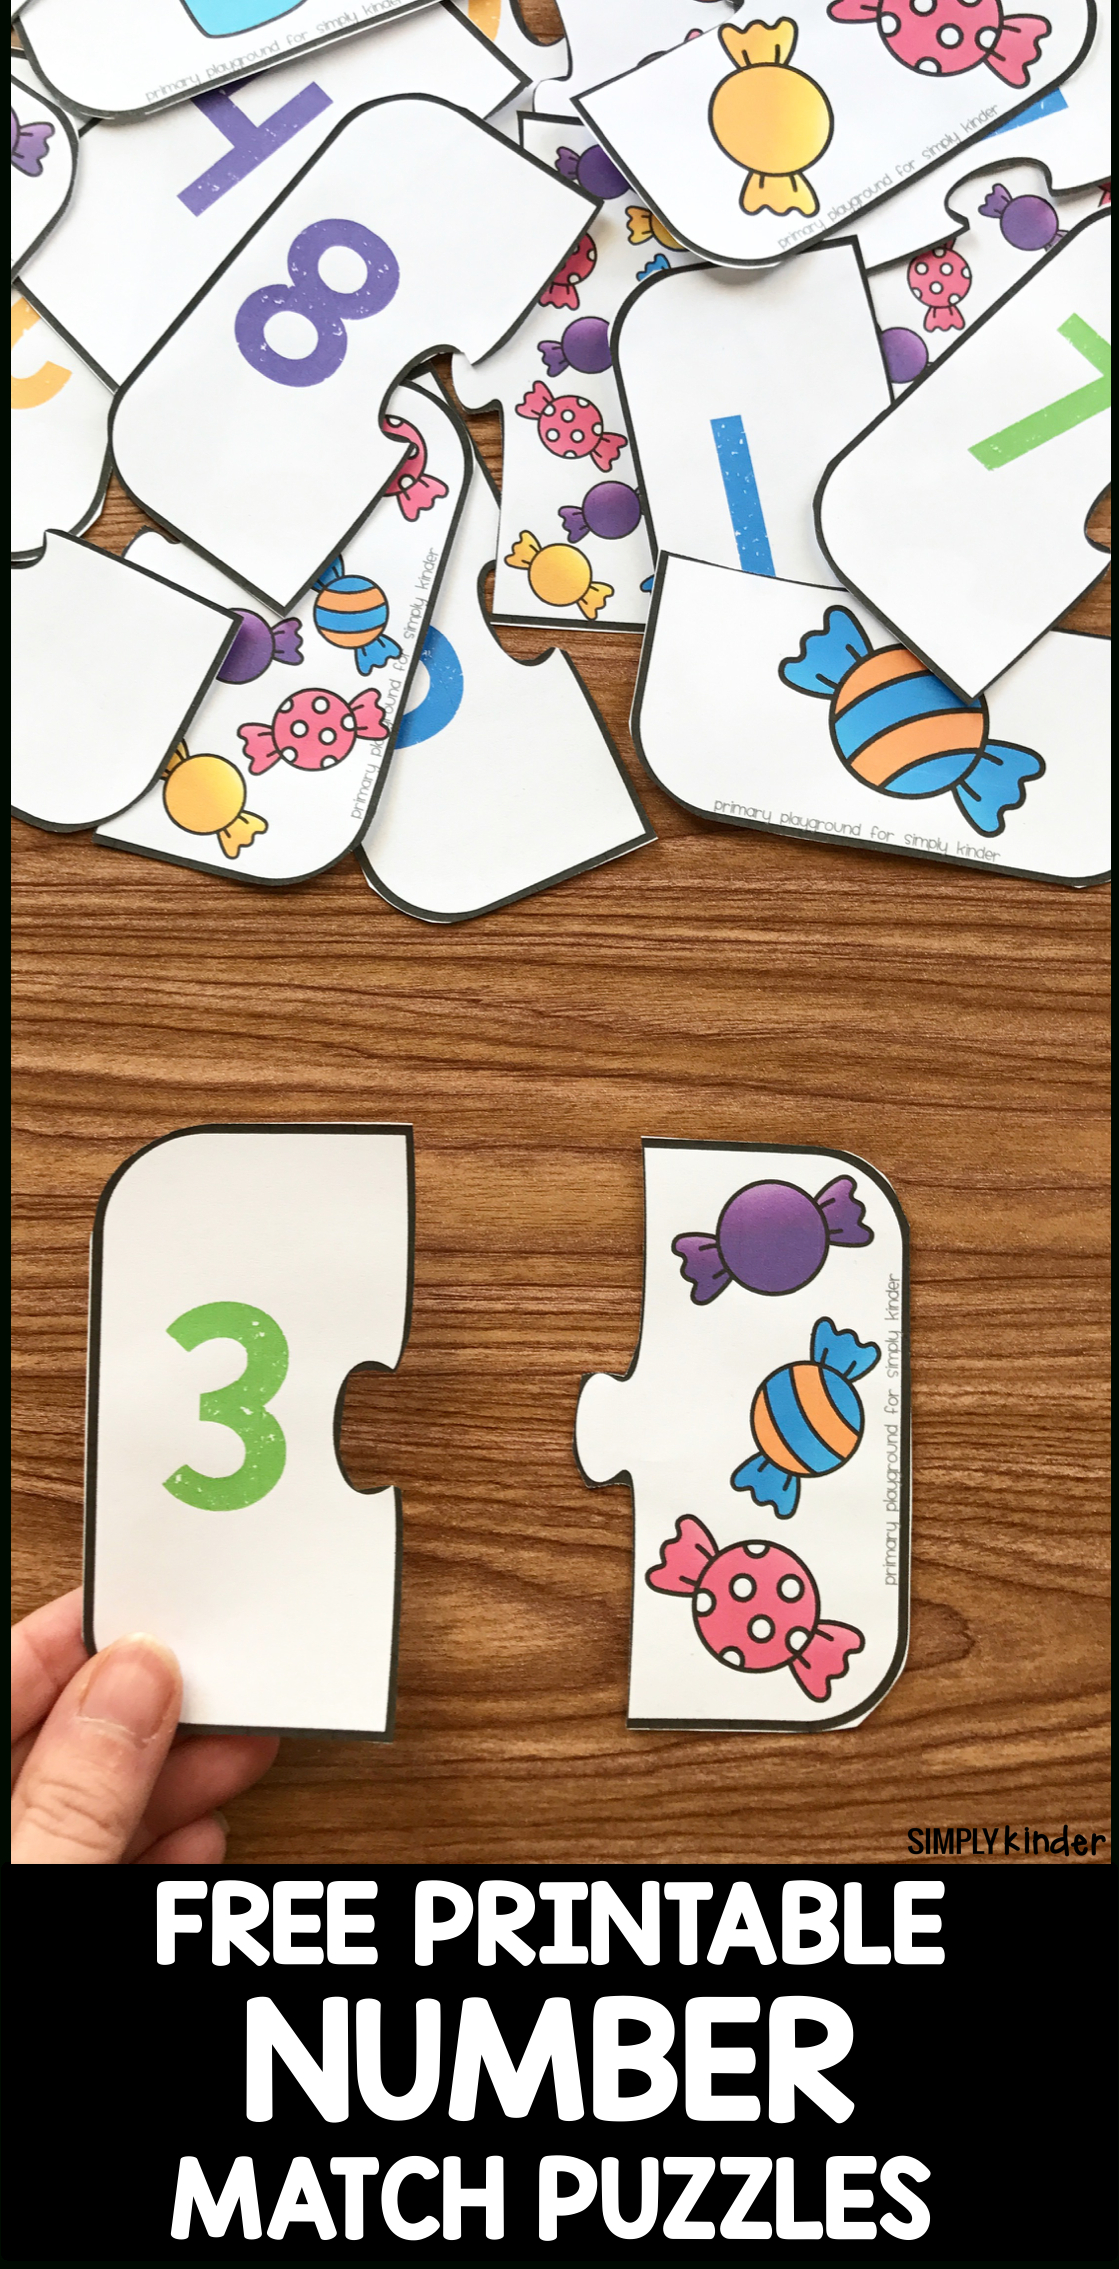 Free Printable Number Match Puzzles | Numbers | Simply Kinder, Free - Printable Puzzle For Preschool